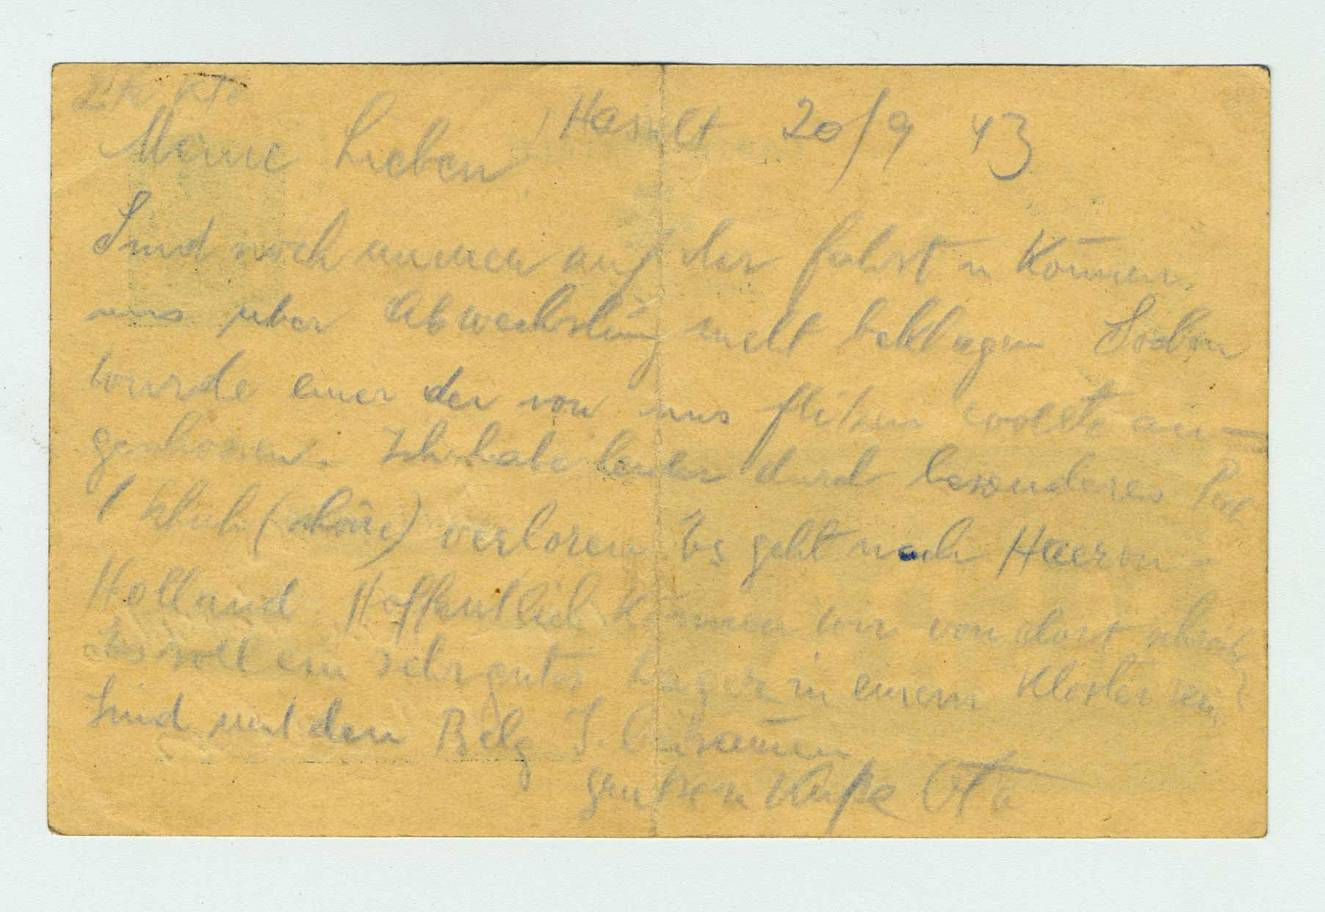 Postcard written by Otto Bondy to his children, Malines transit camp (Belgium), September 20, 1943. Language: German.